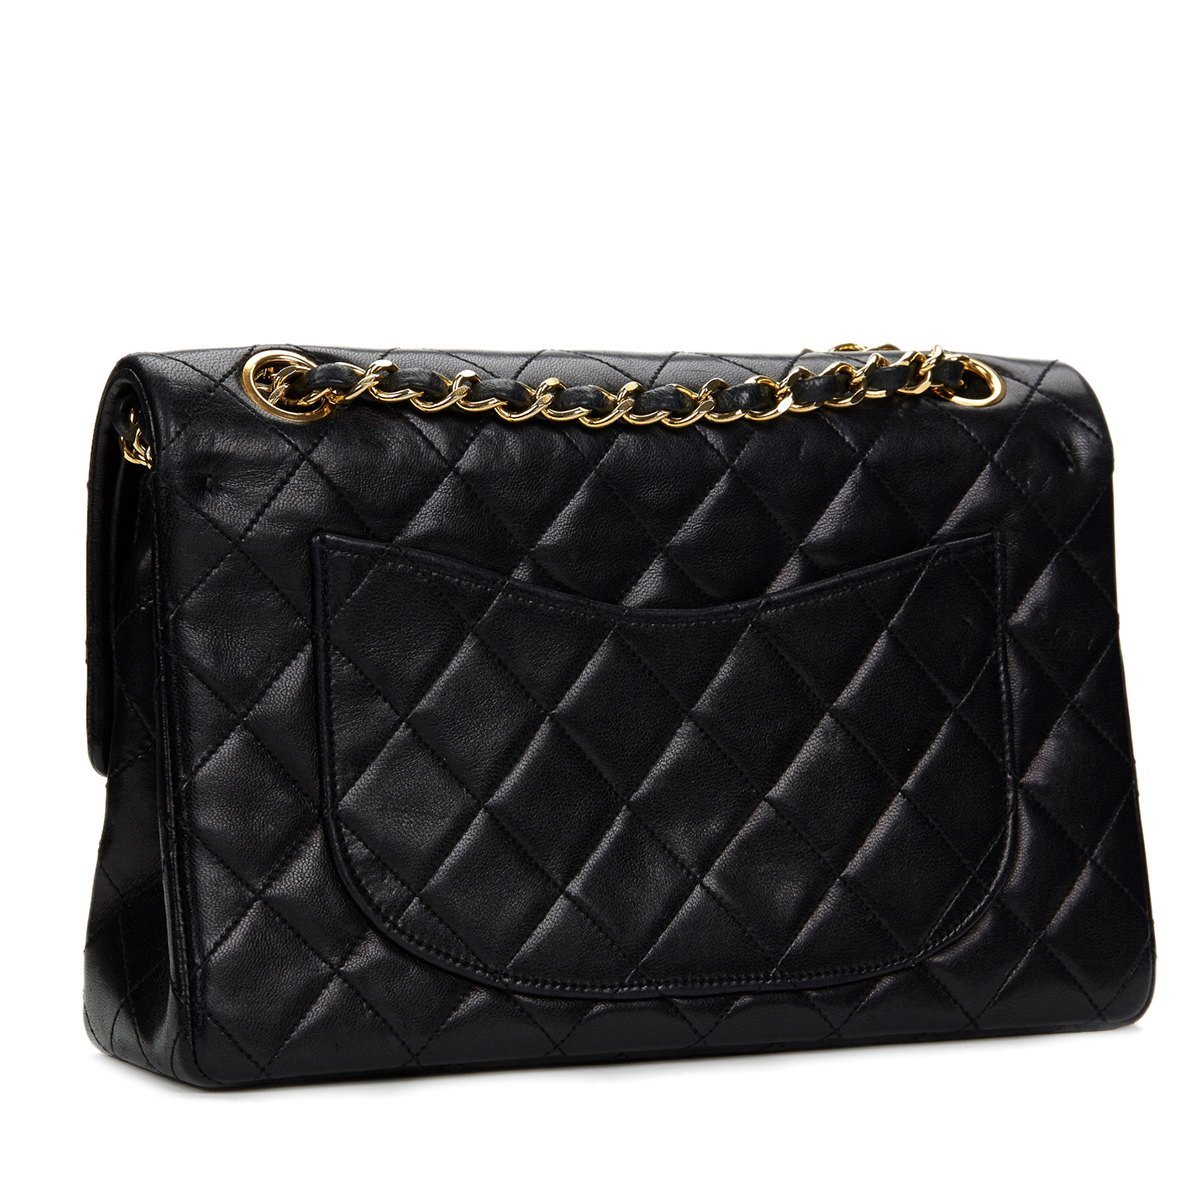 classic chanel bag price-#43